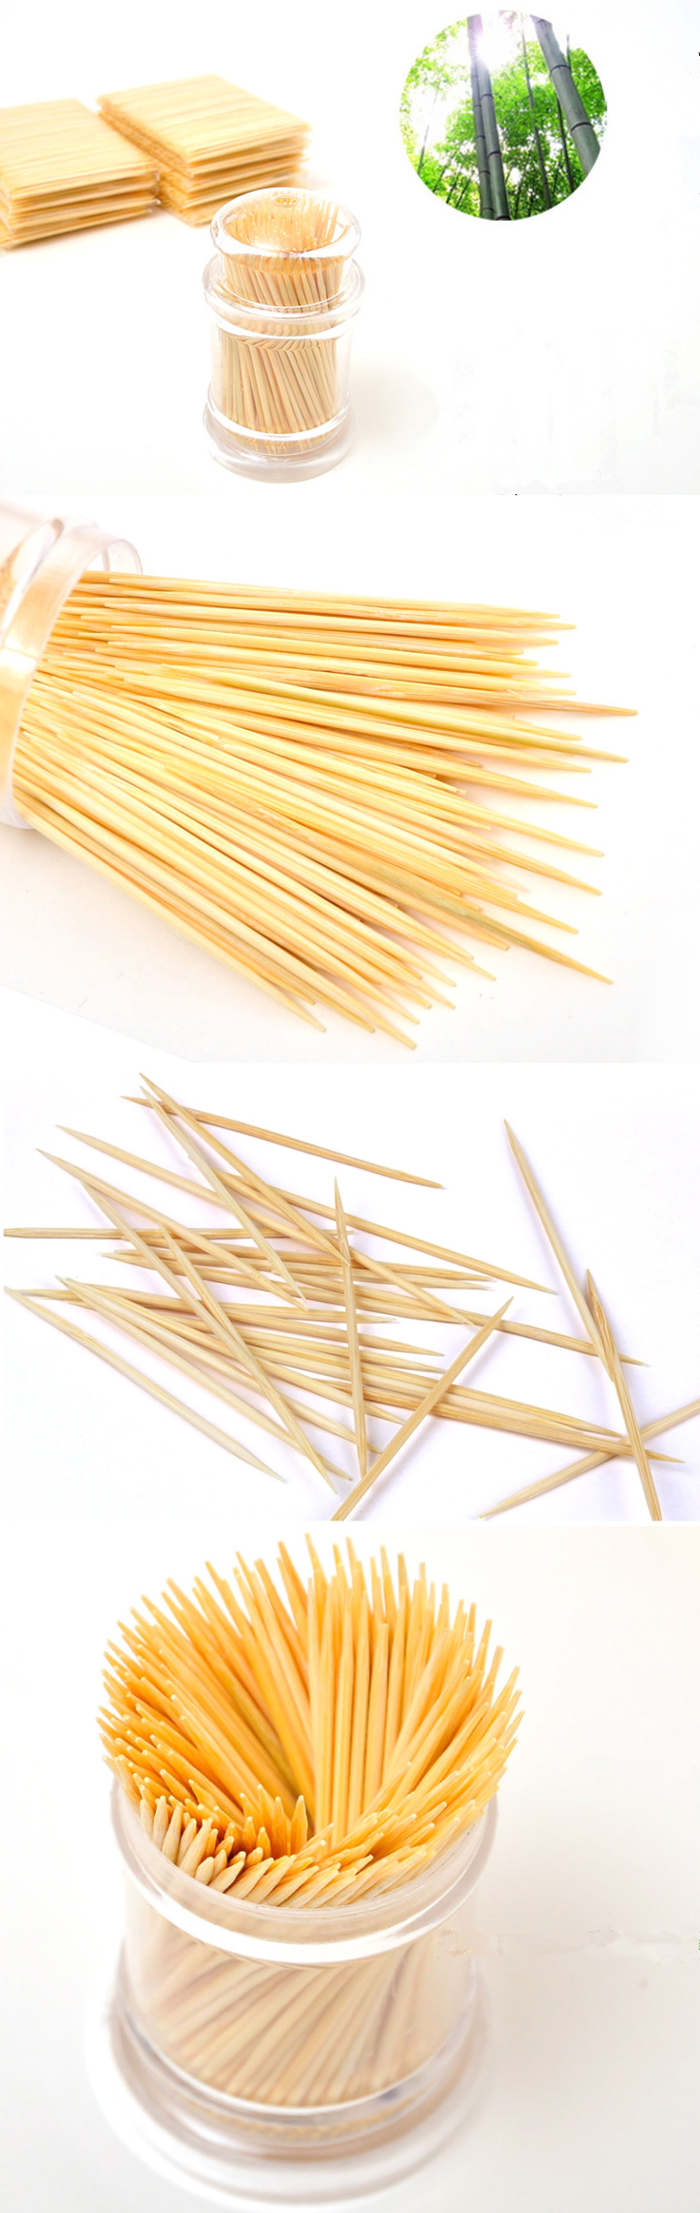 bamboo toothpicks.png